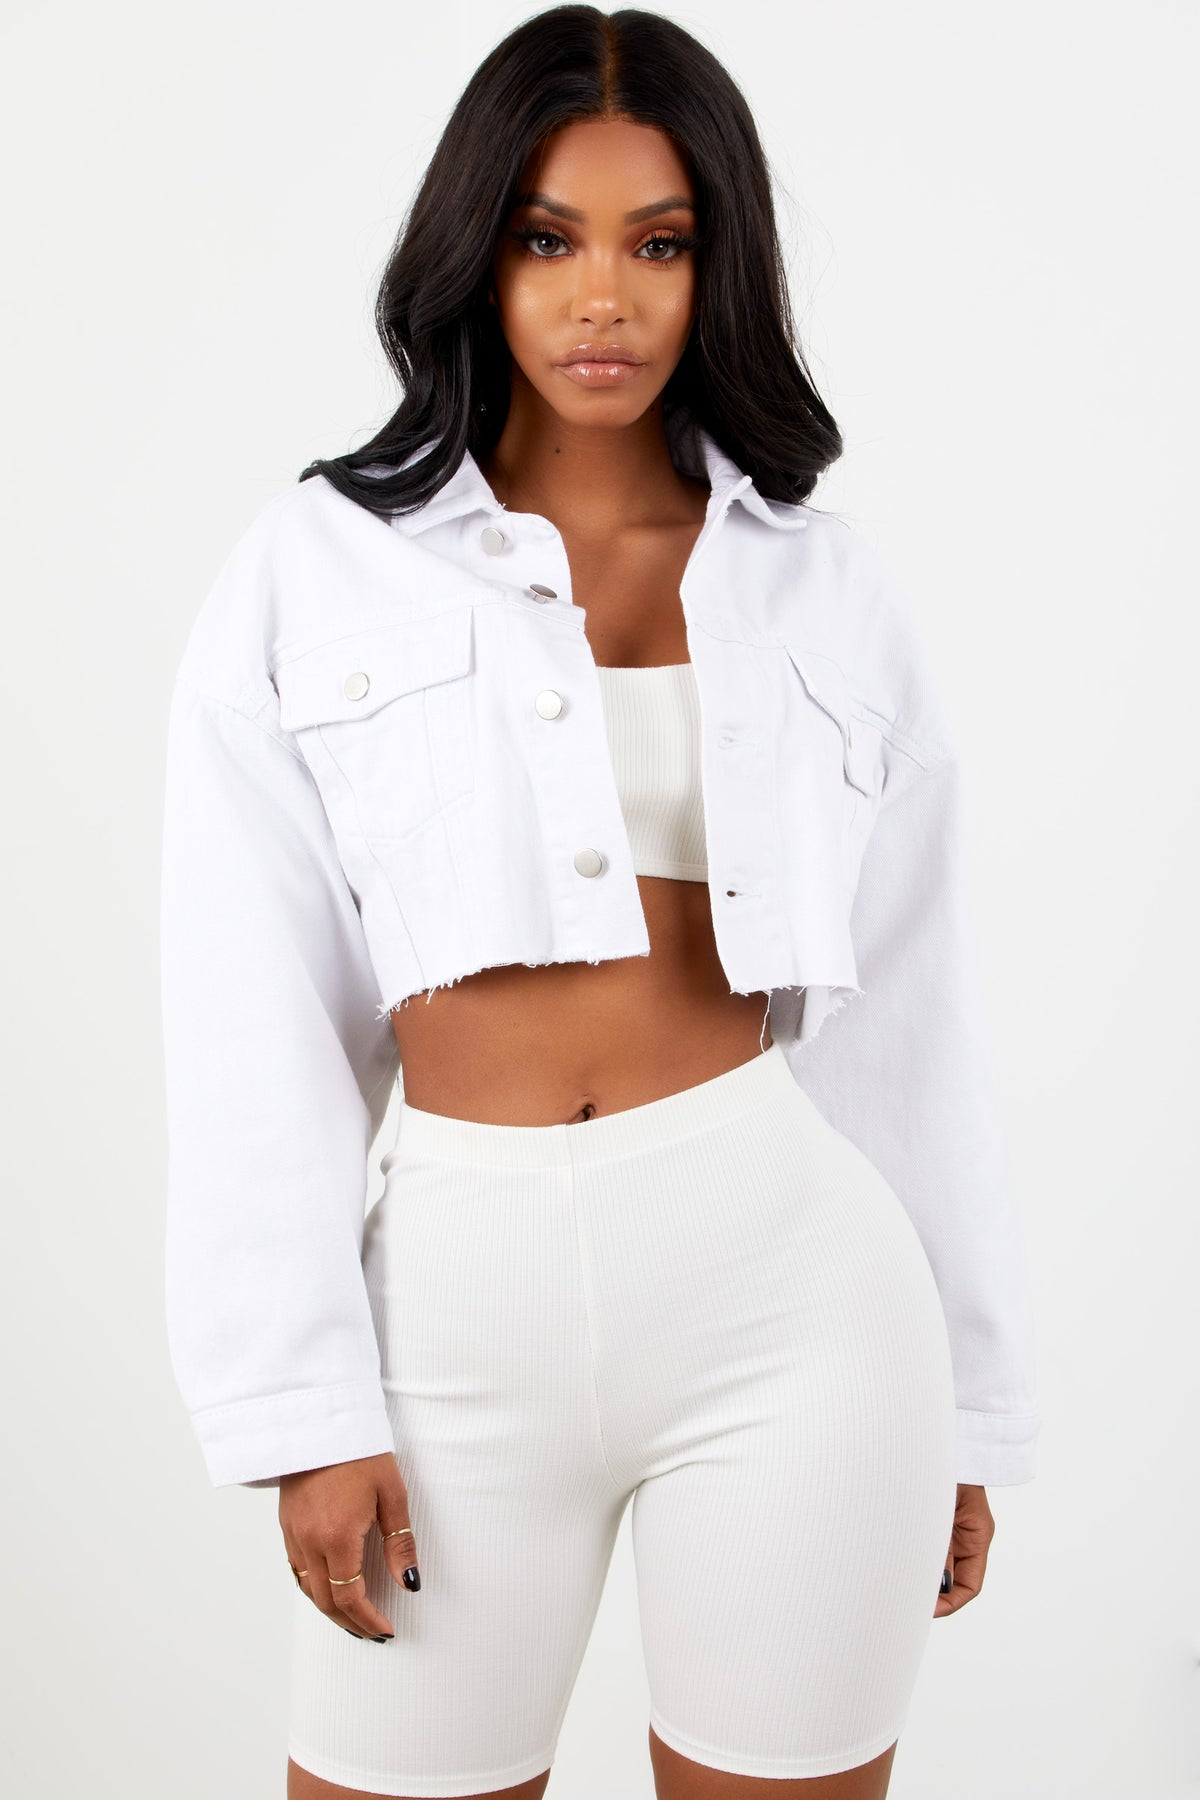 Sorella Ribbed Biker Shorts - White